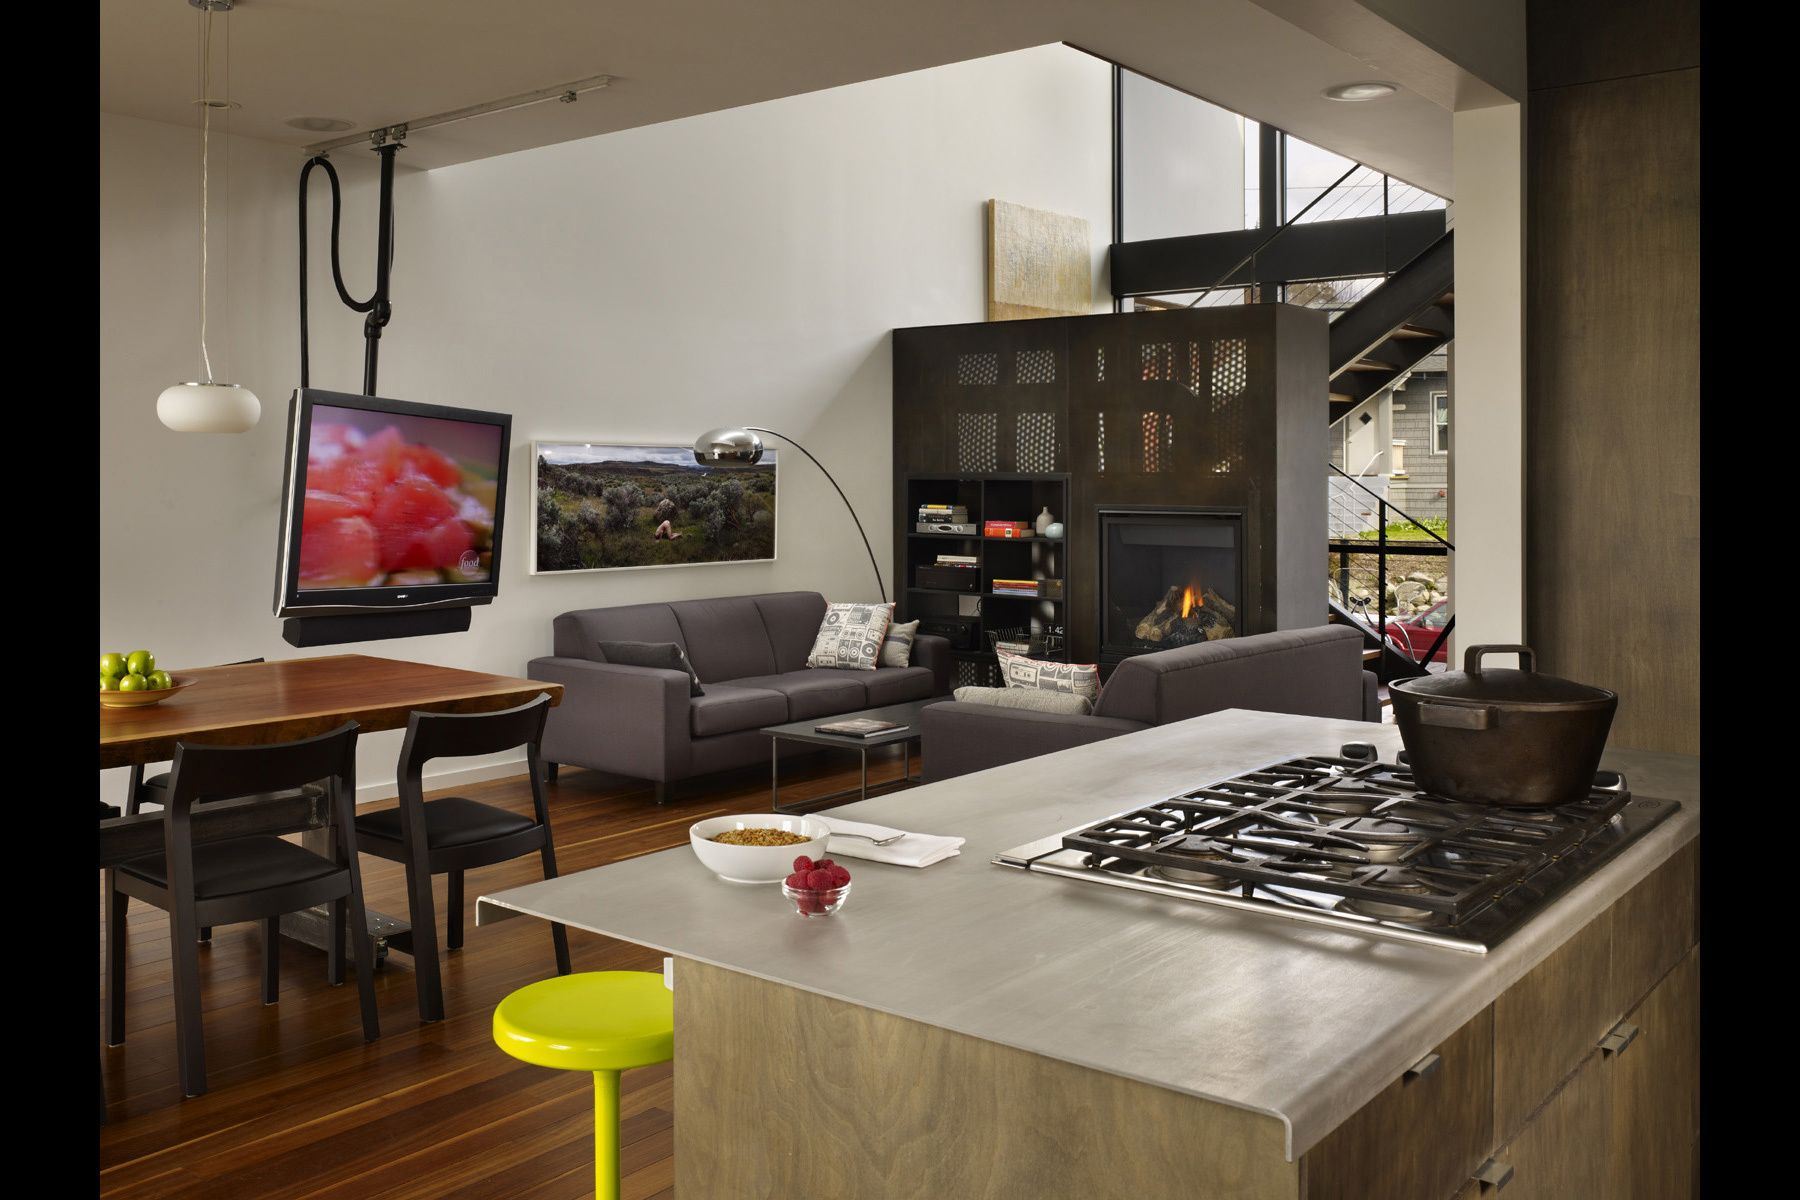 kitchen, custom tv mount, steel fireplace, open space